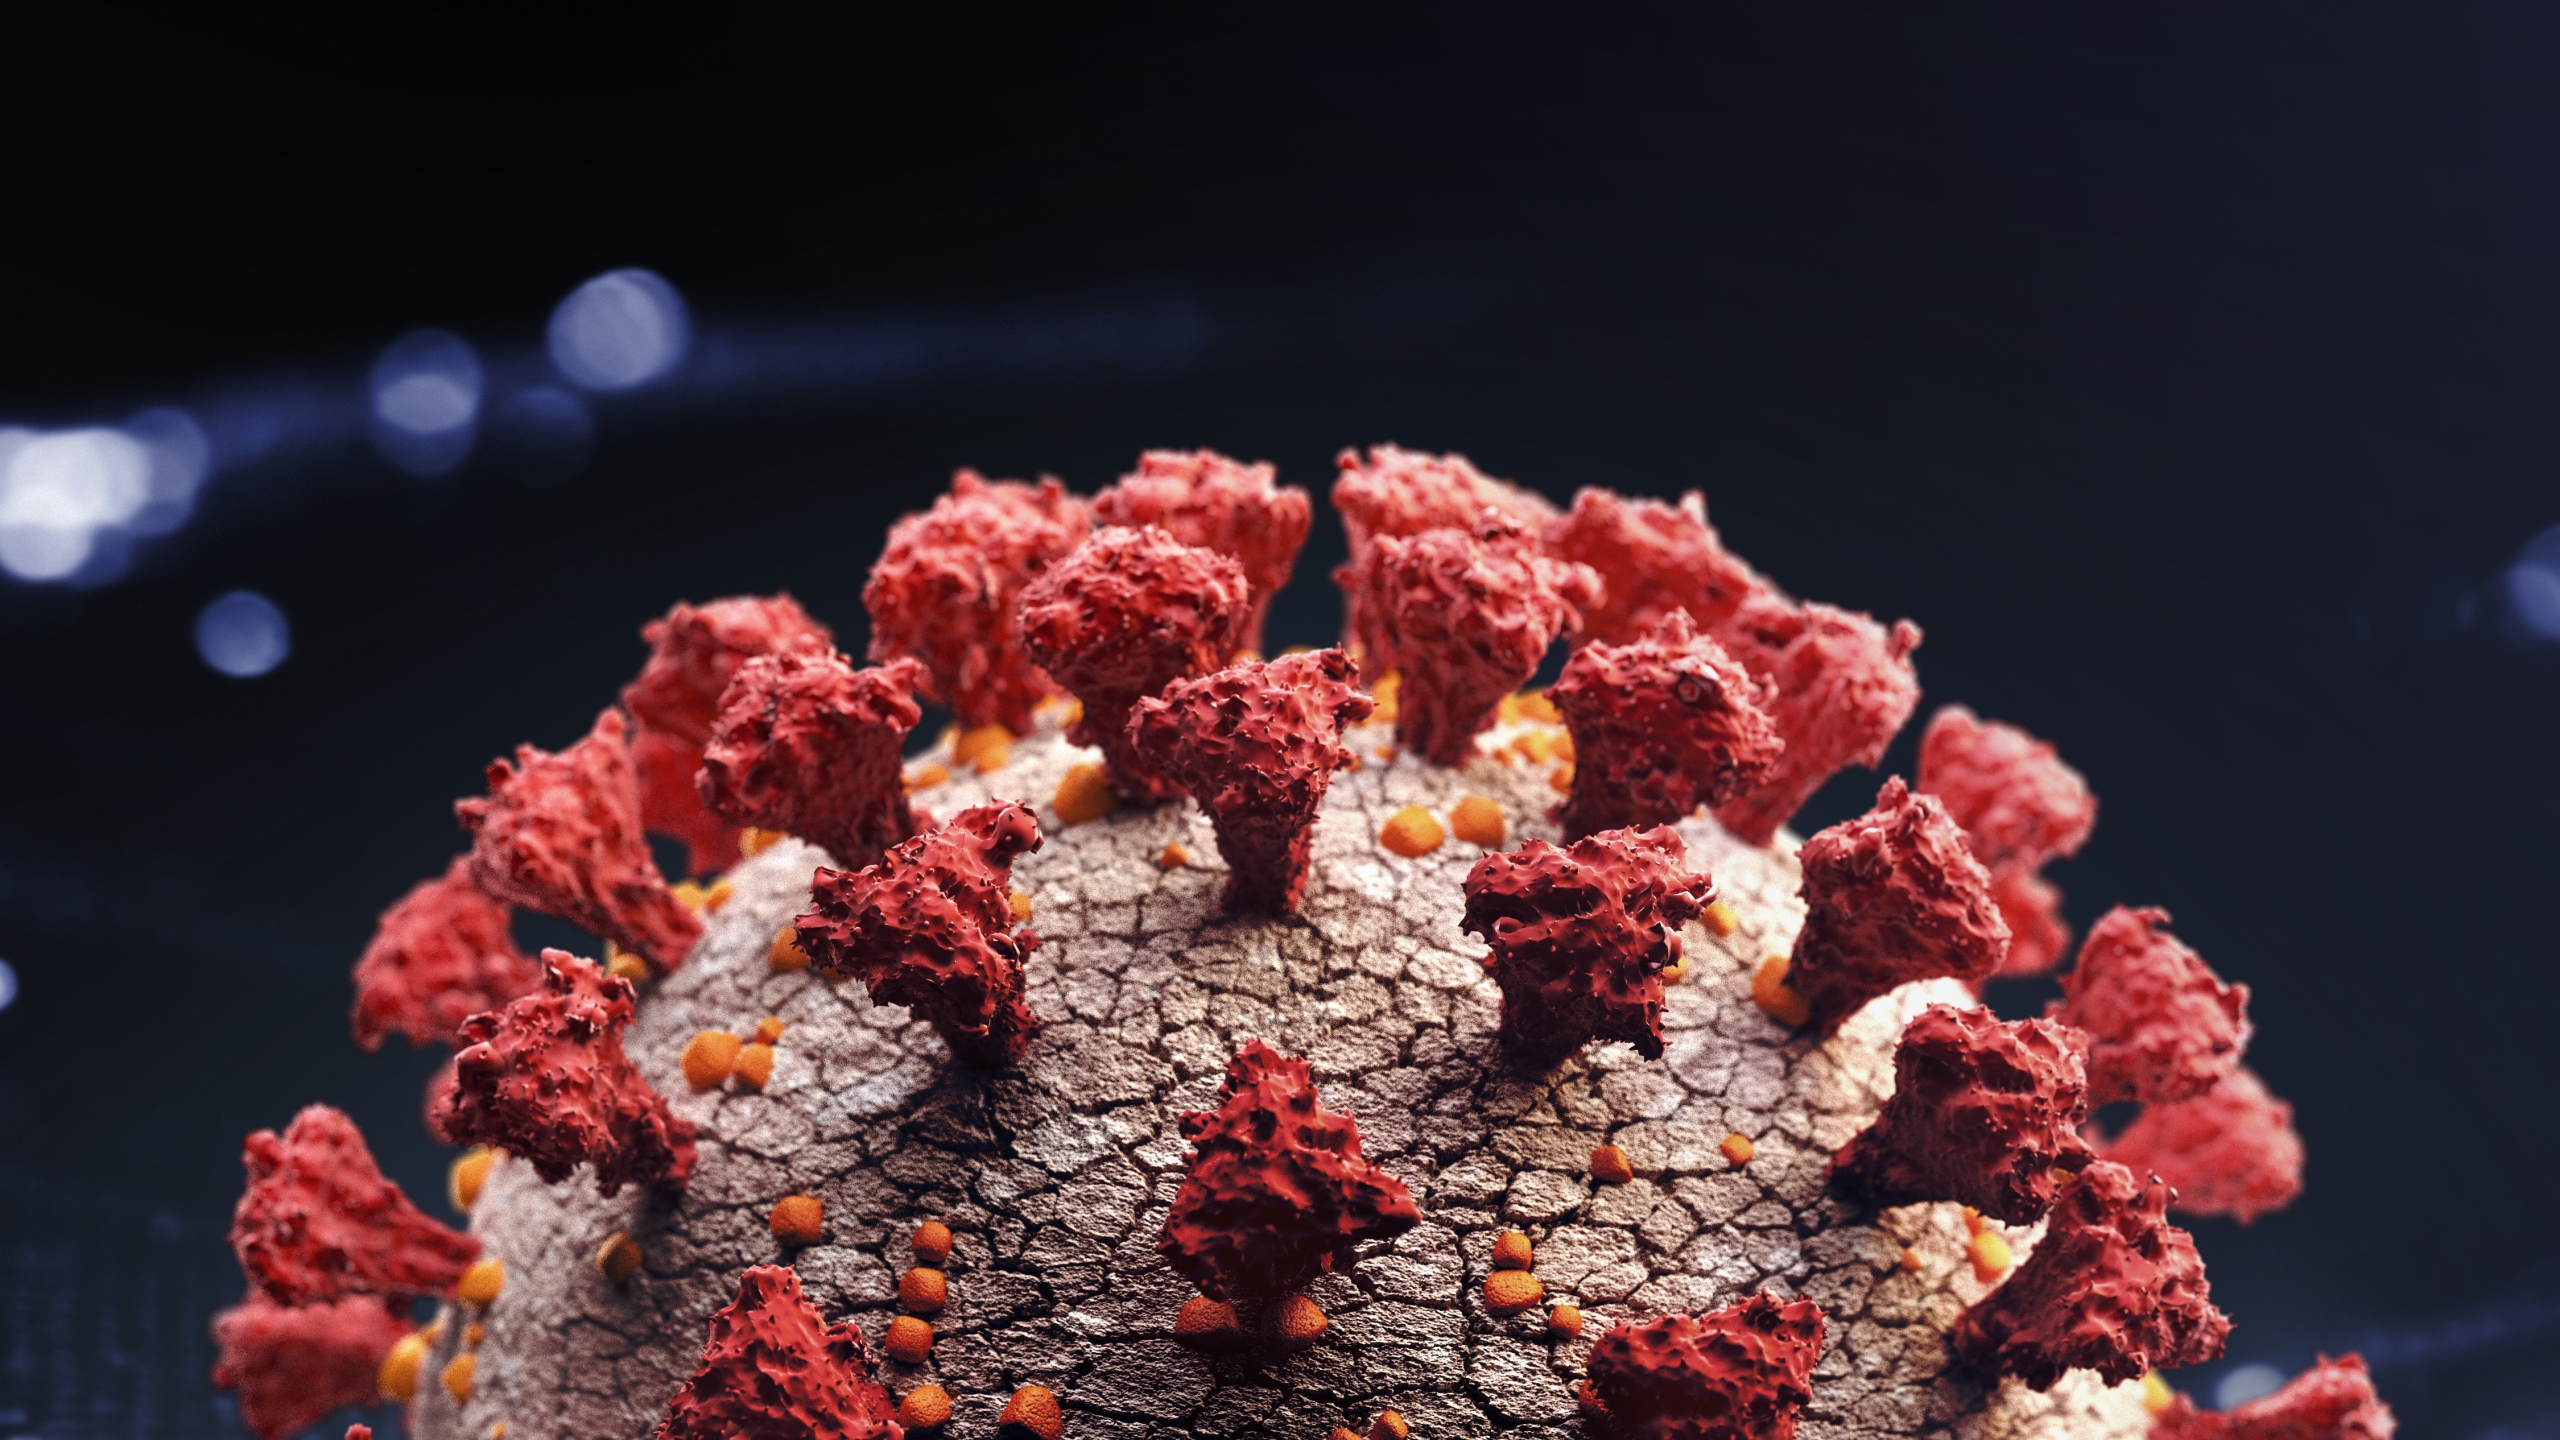 Corona virus close up